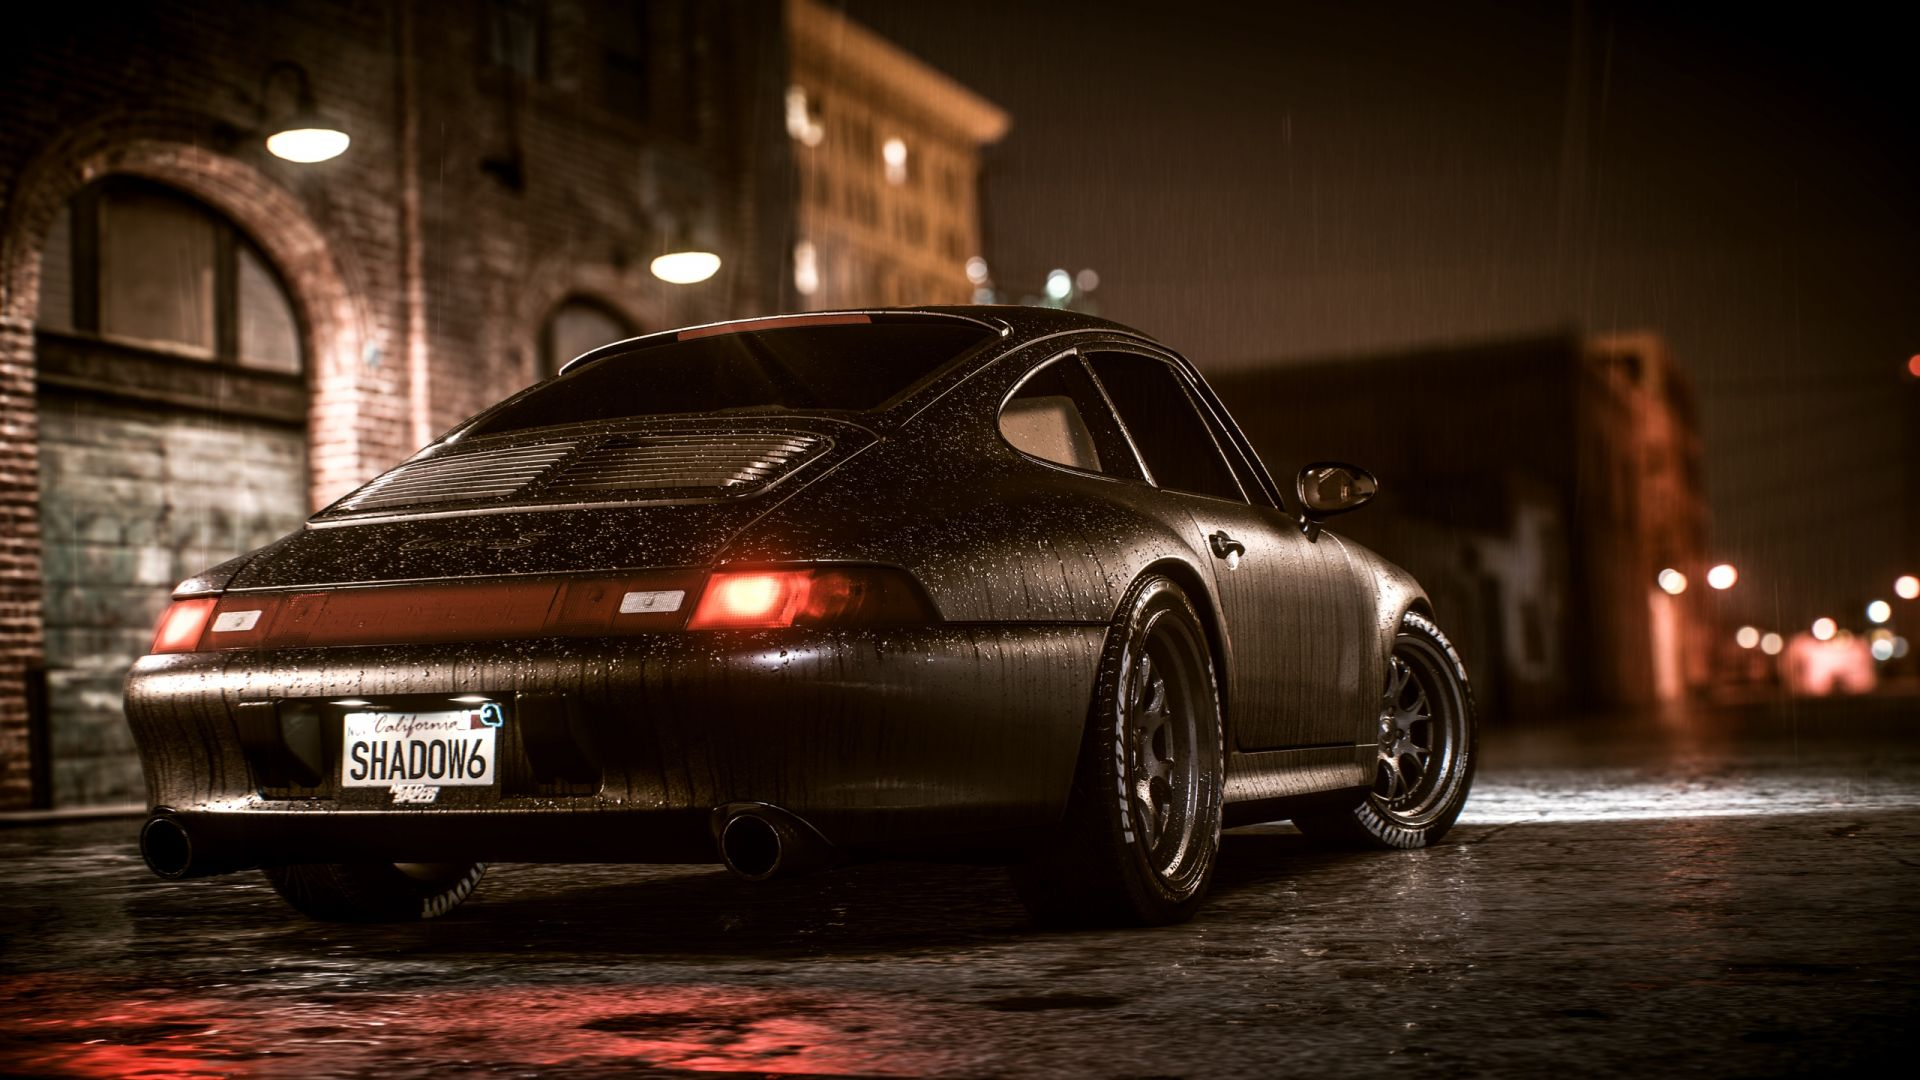 Wallpaper Need for Speed Payback, sports car, night, rain